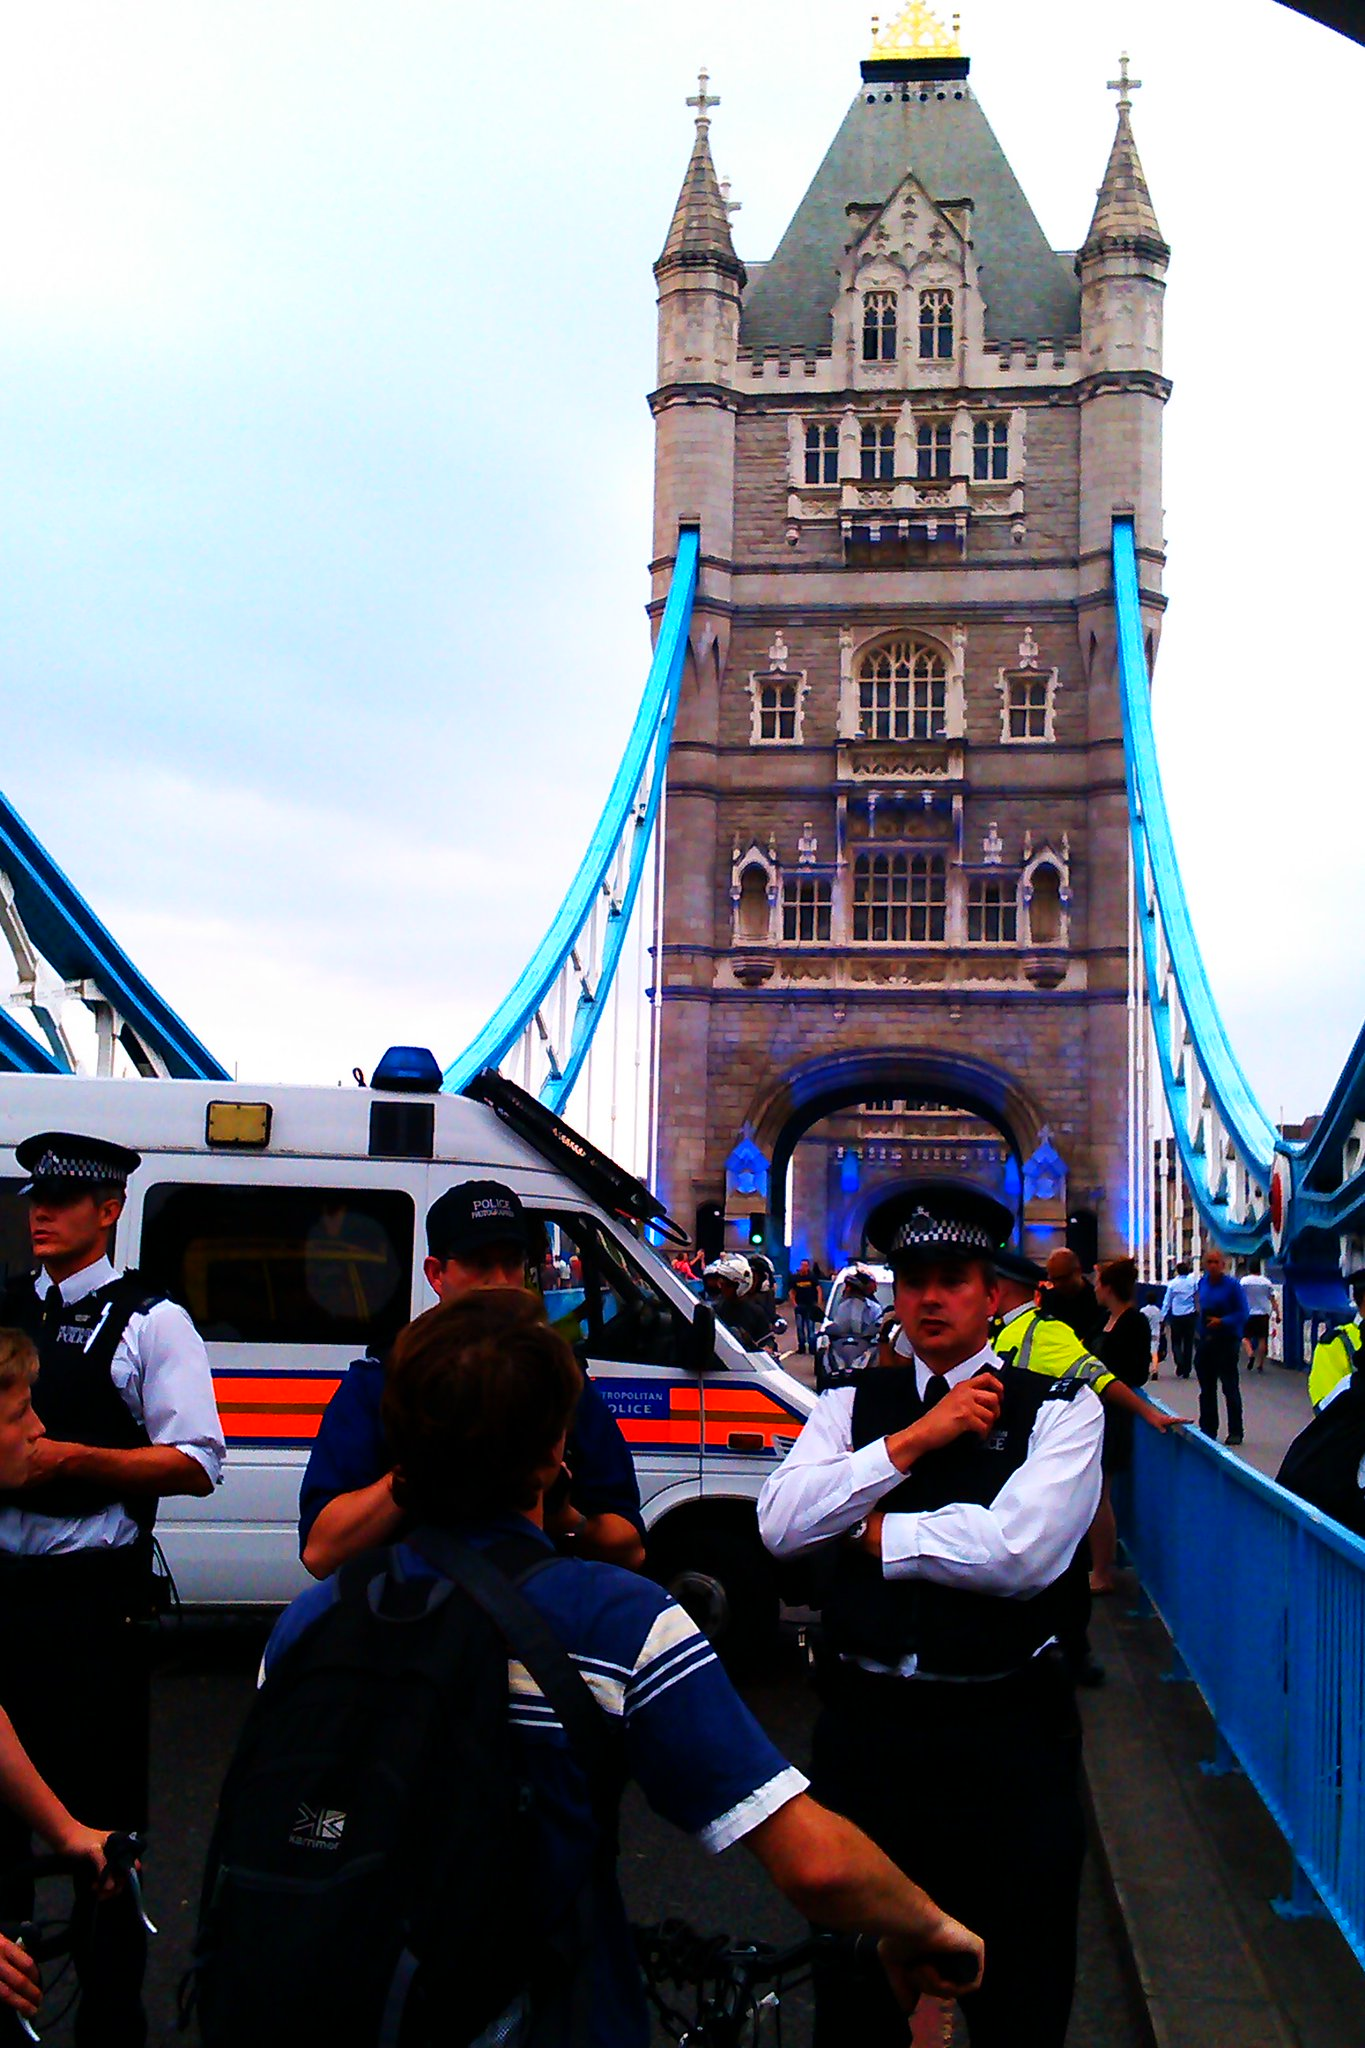 RT @aymanscribbler: Police block London traffic, Tower Bridge #criticalmass #London2012 http://t.co/fX2TLvGc